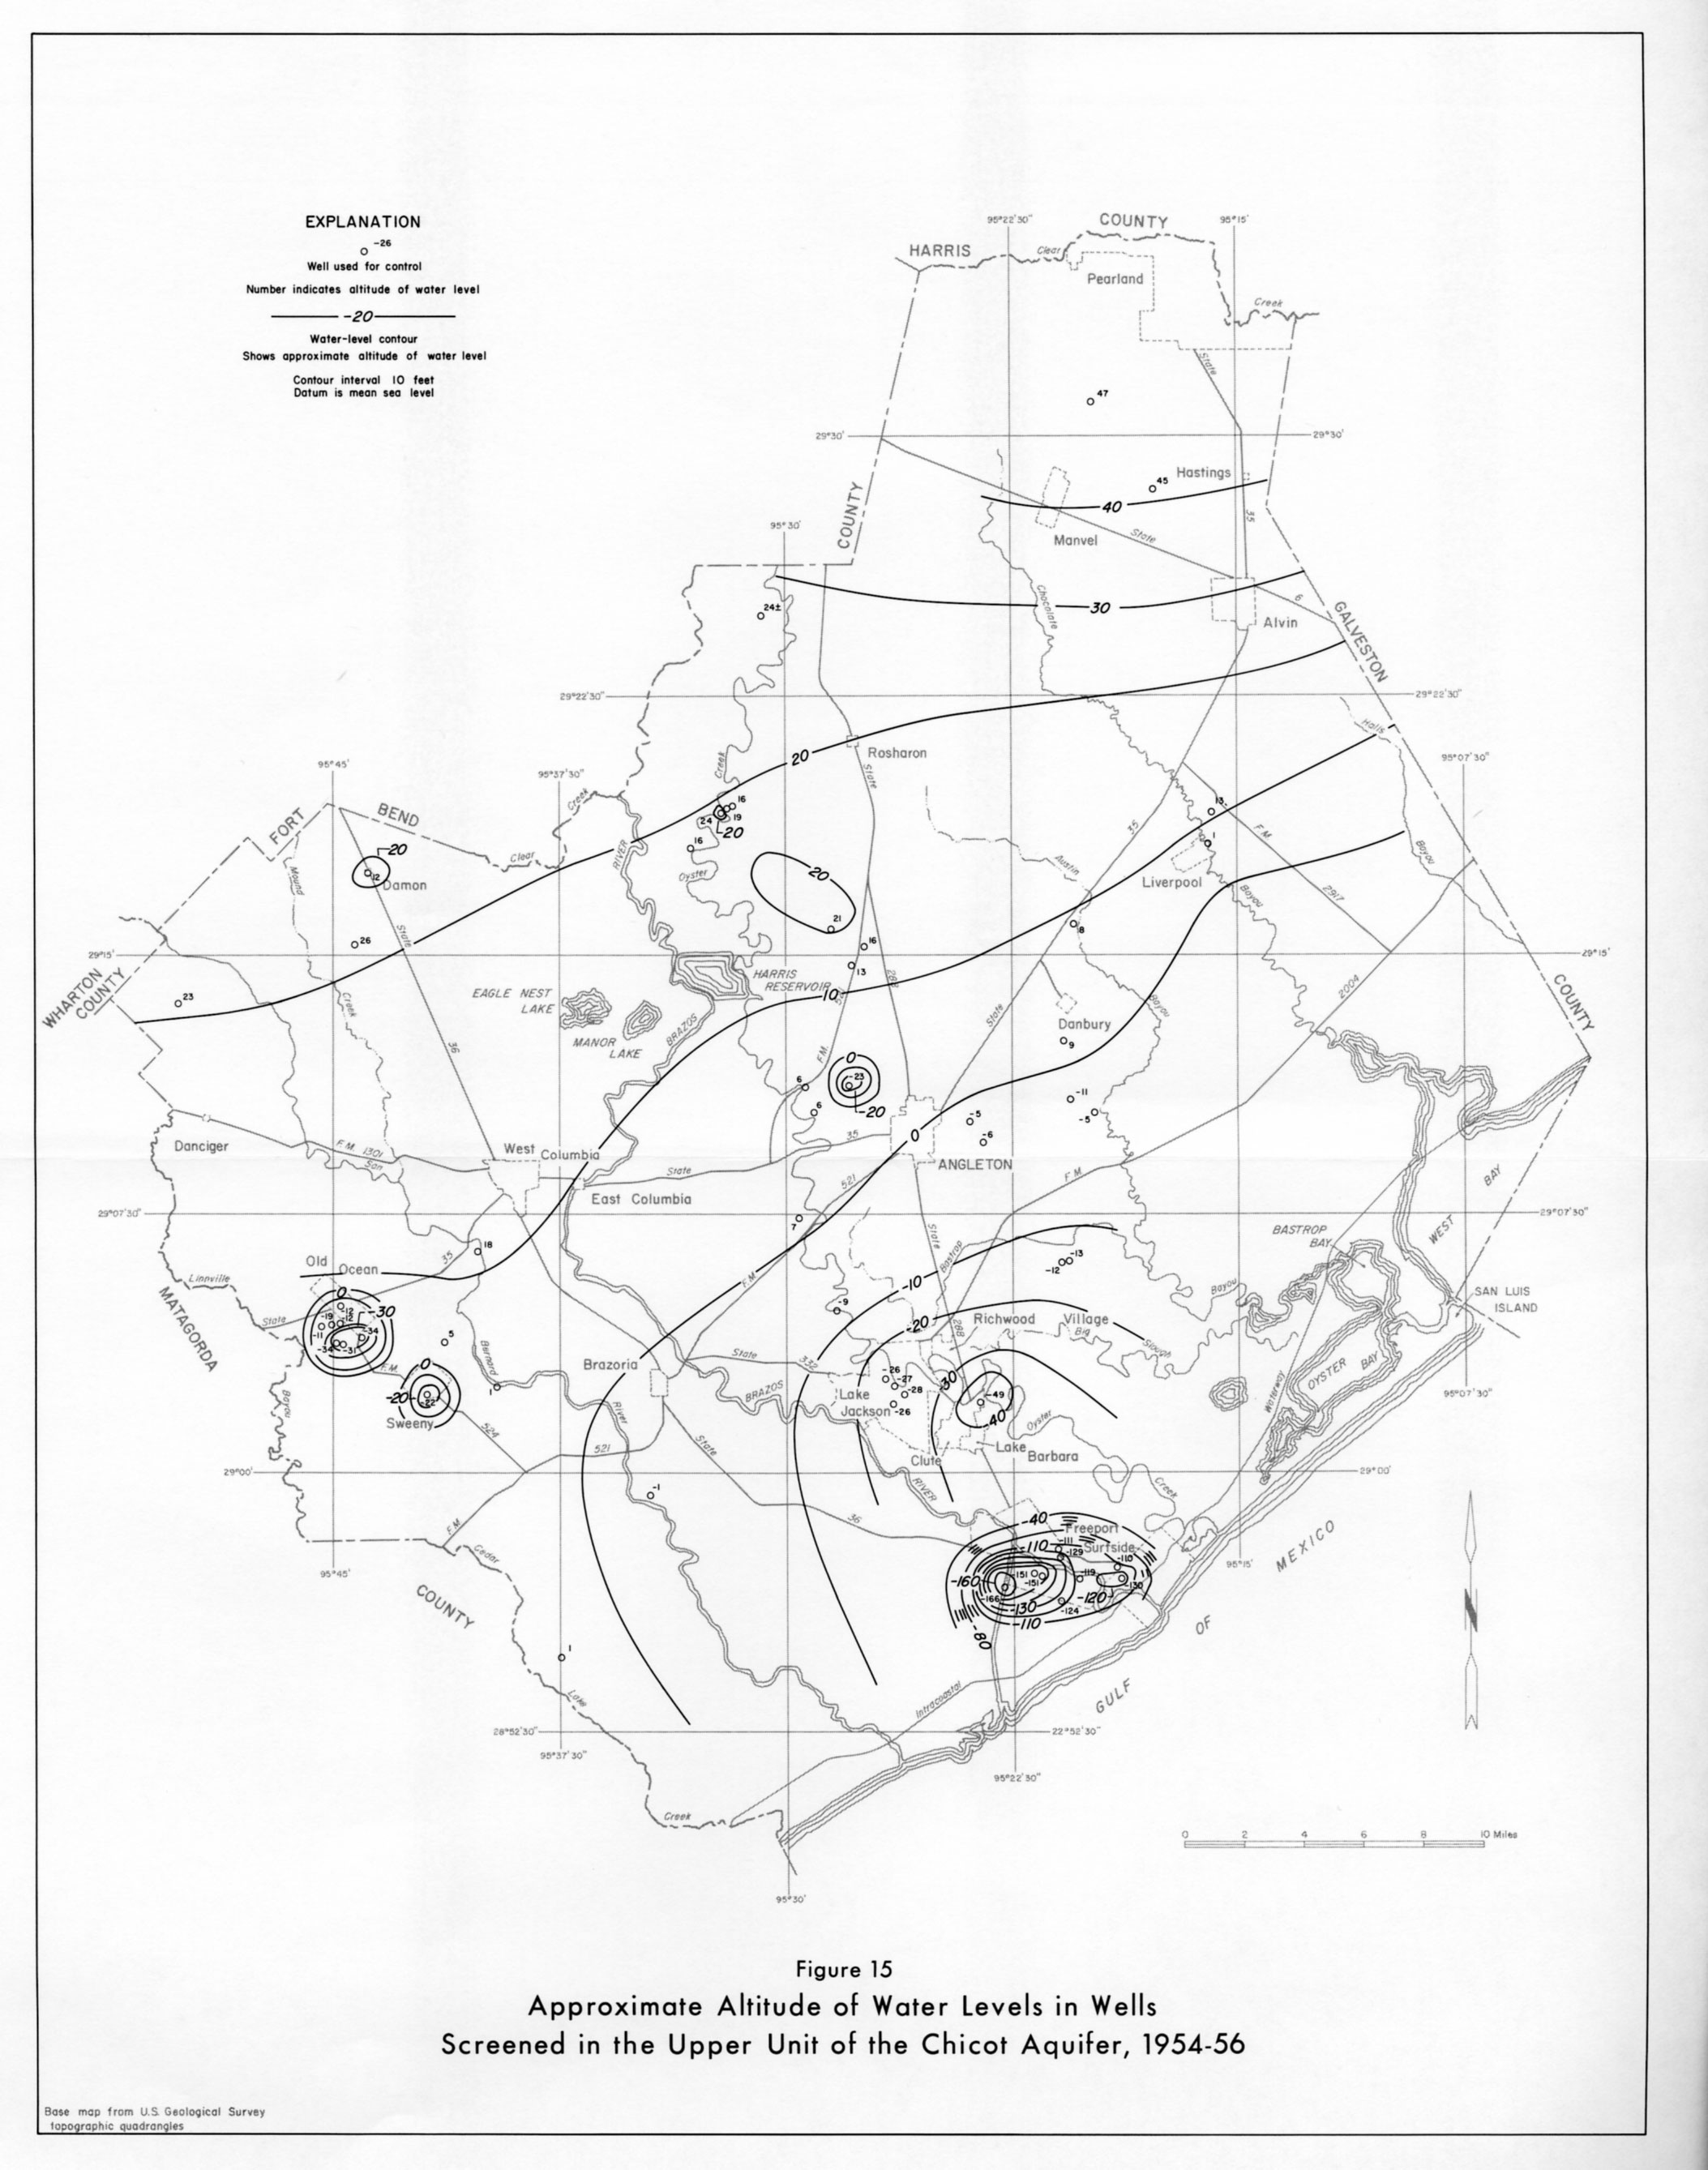 Aludes Of Water Levels In Wells Screened In The Upper Unit Of The Chicot Aquifer 1954 56